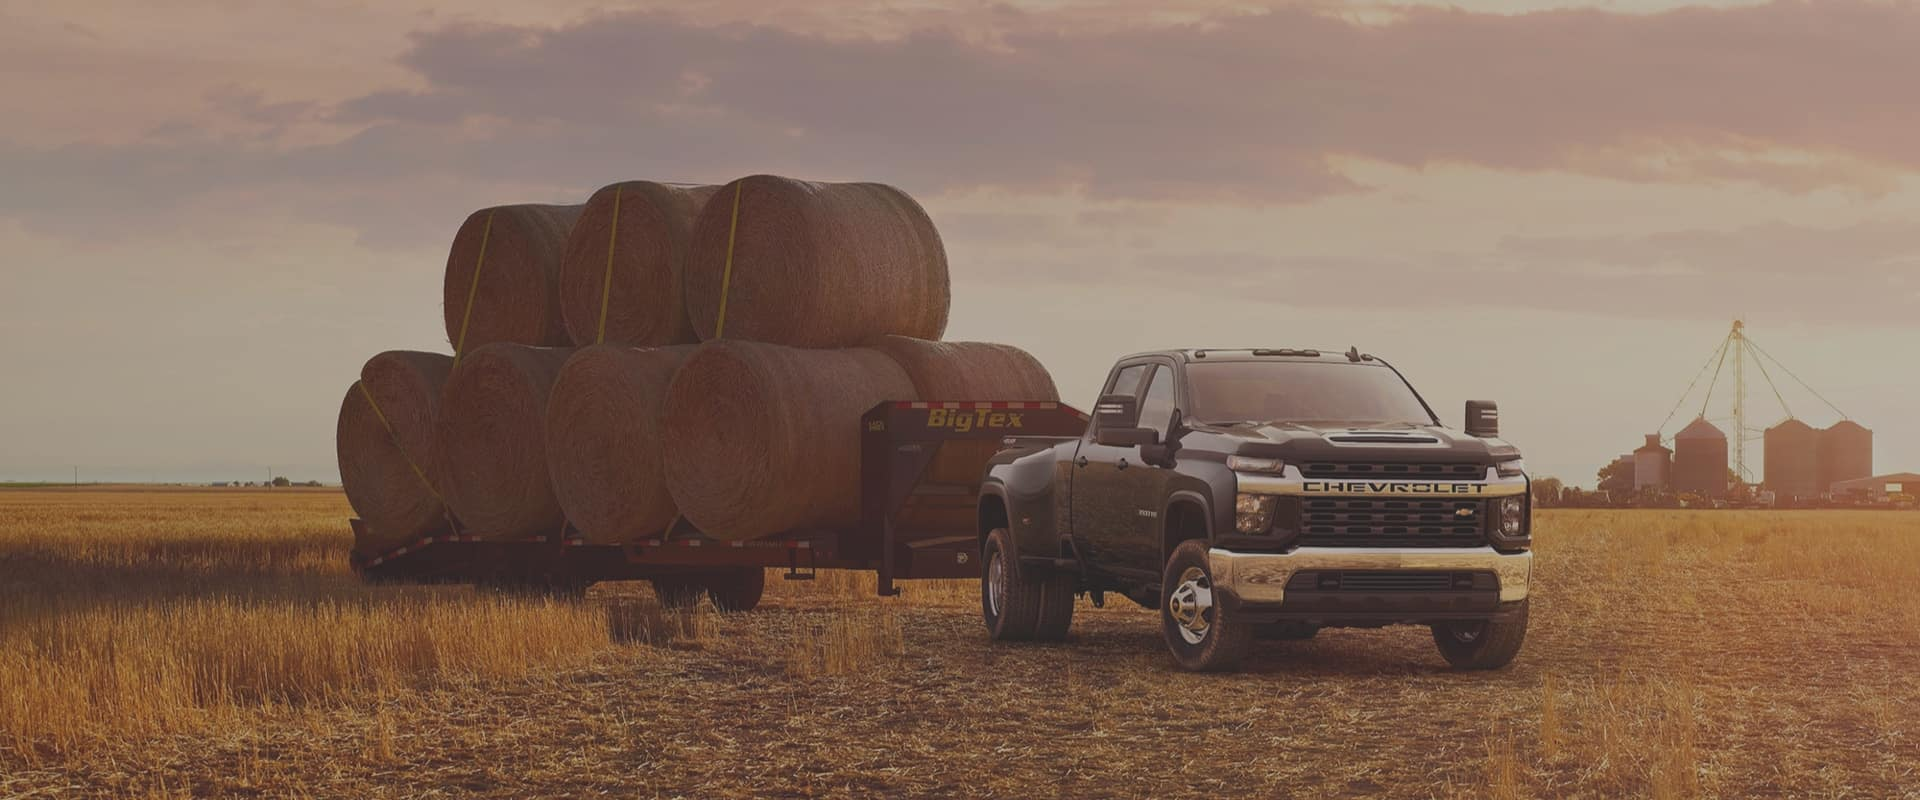 Pickup truck in a field with hay bales behind it